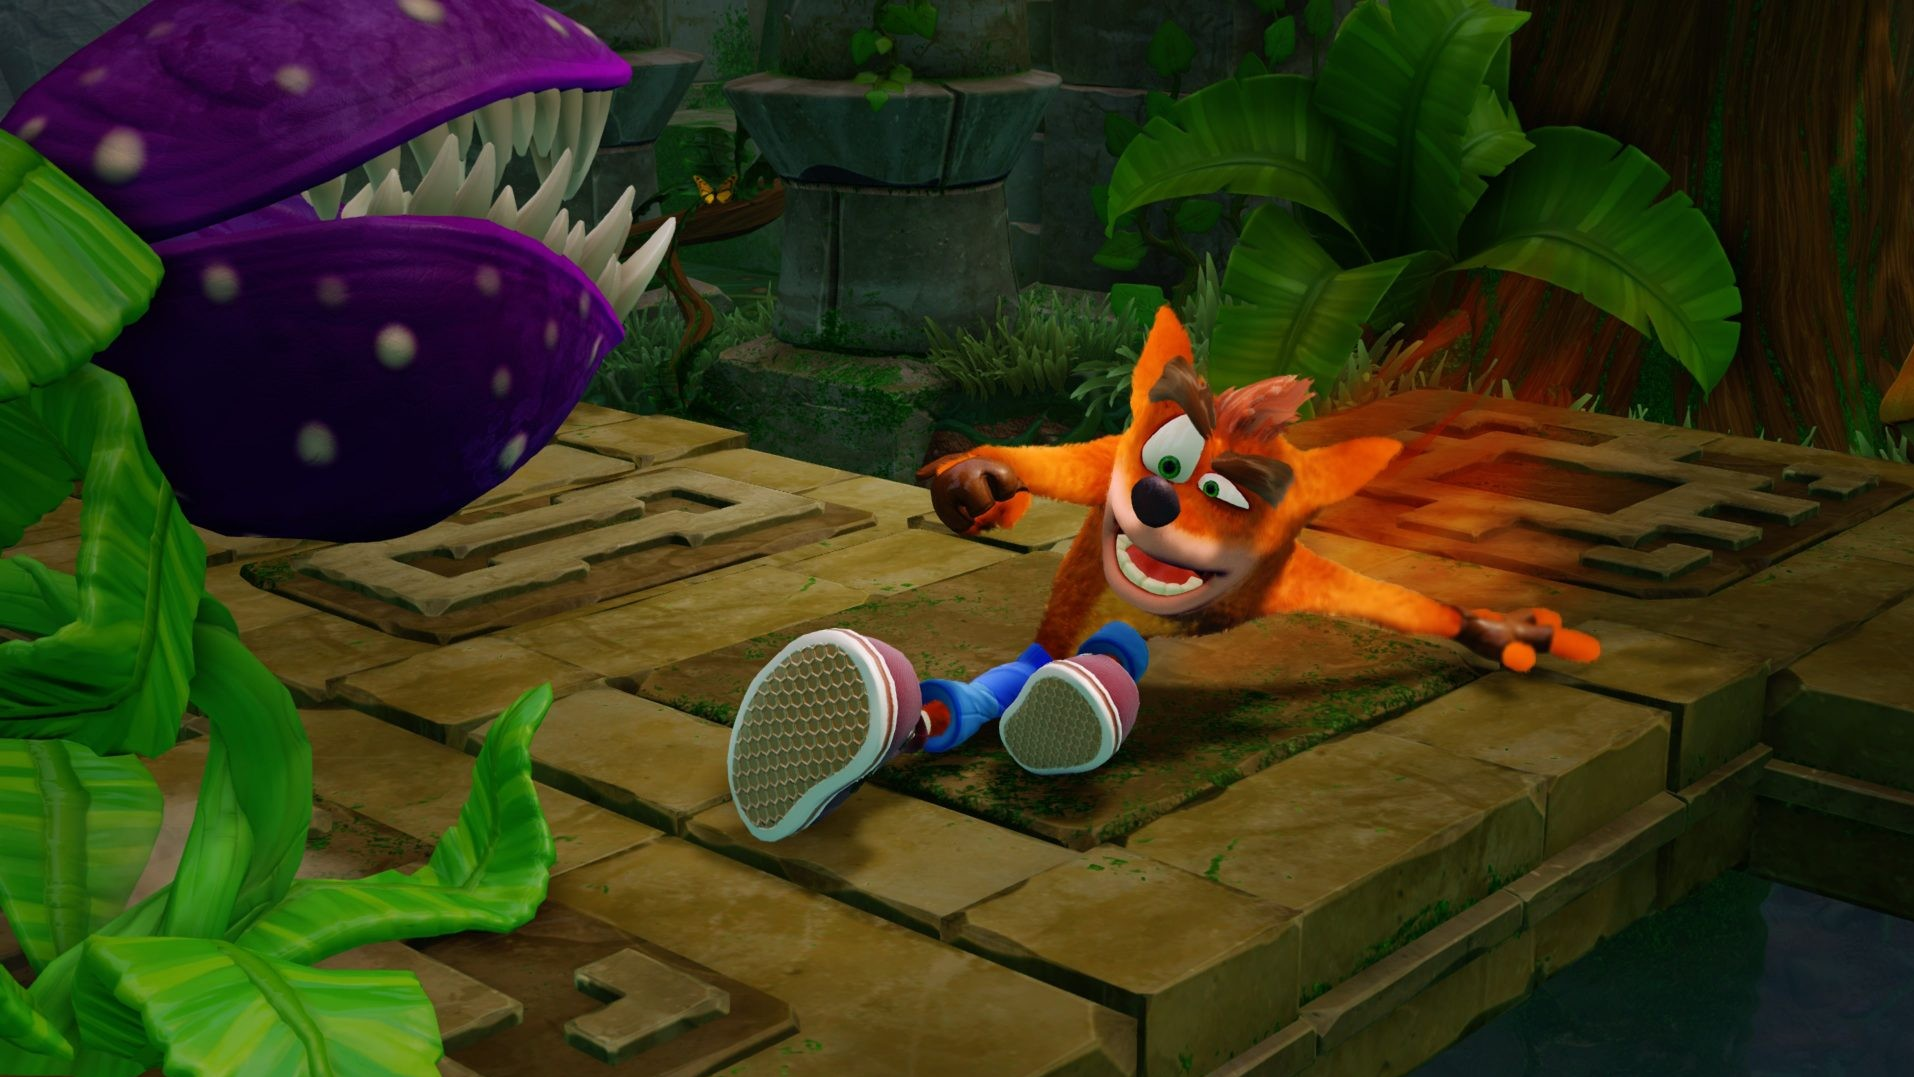 'Crash Bandicoot' Sprints To Become The Fastest Selling Switch Game Of 2018